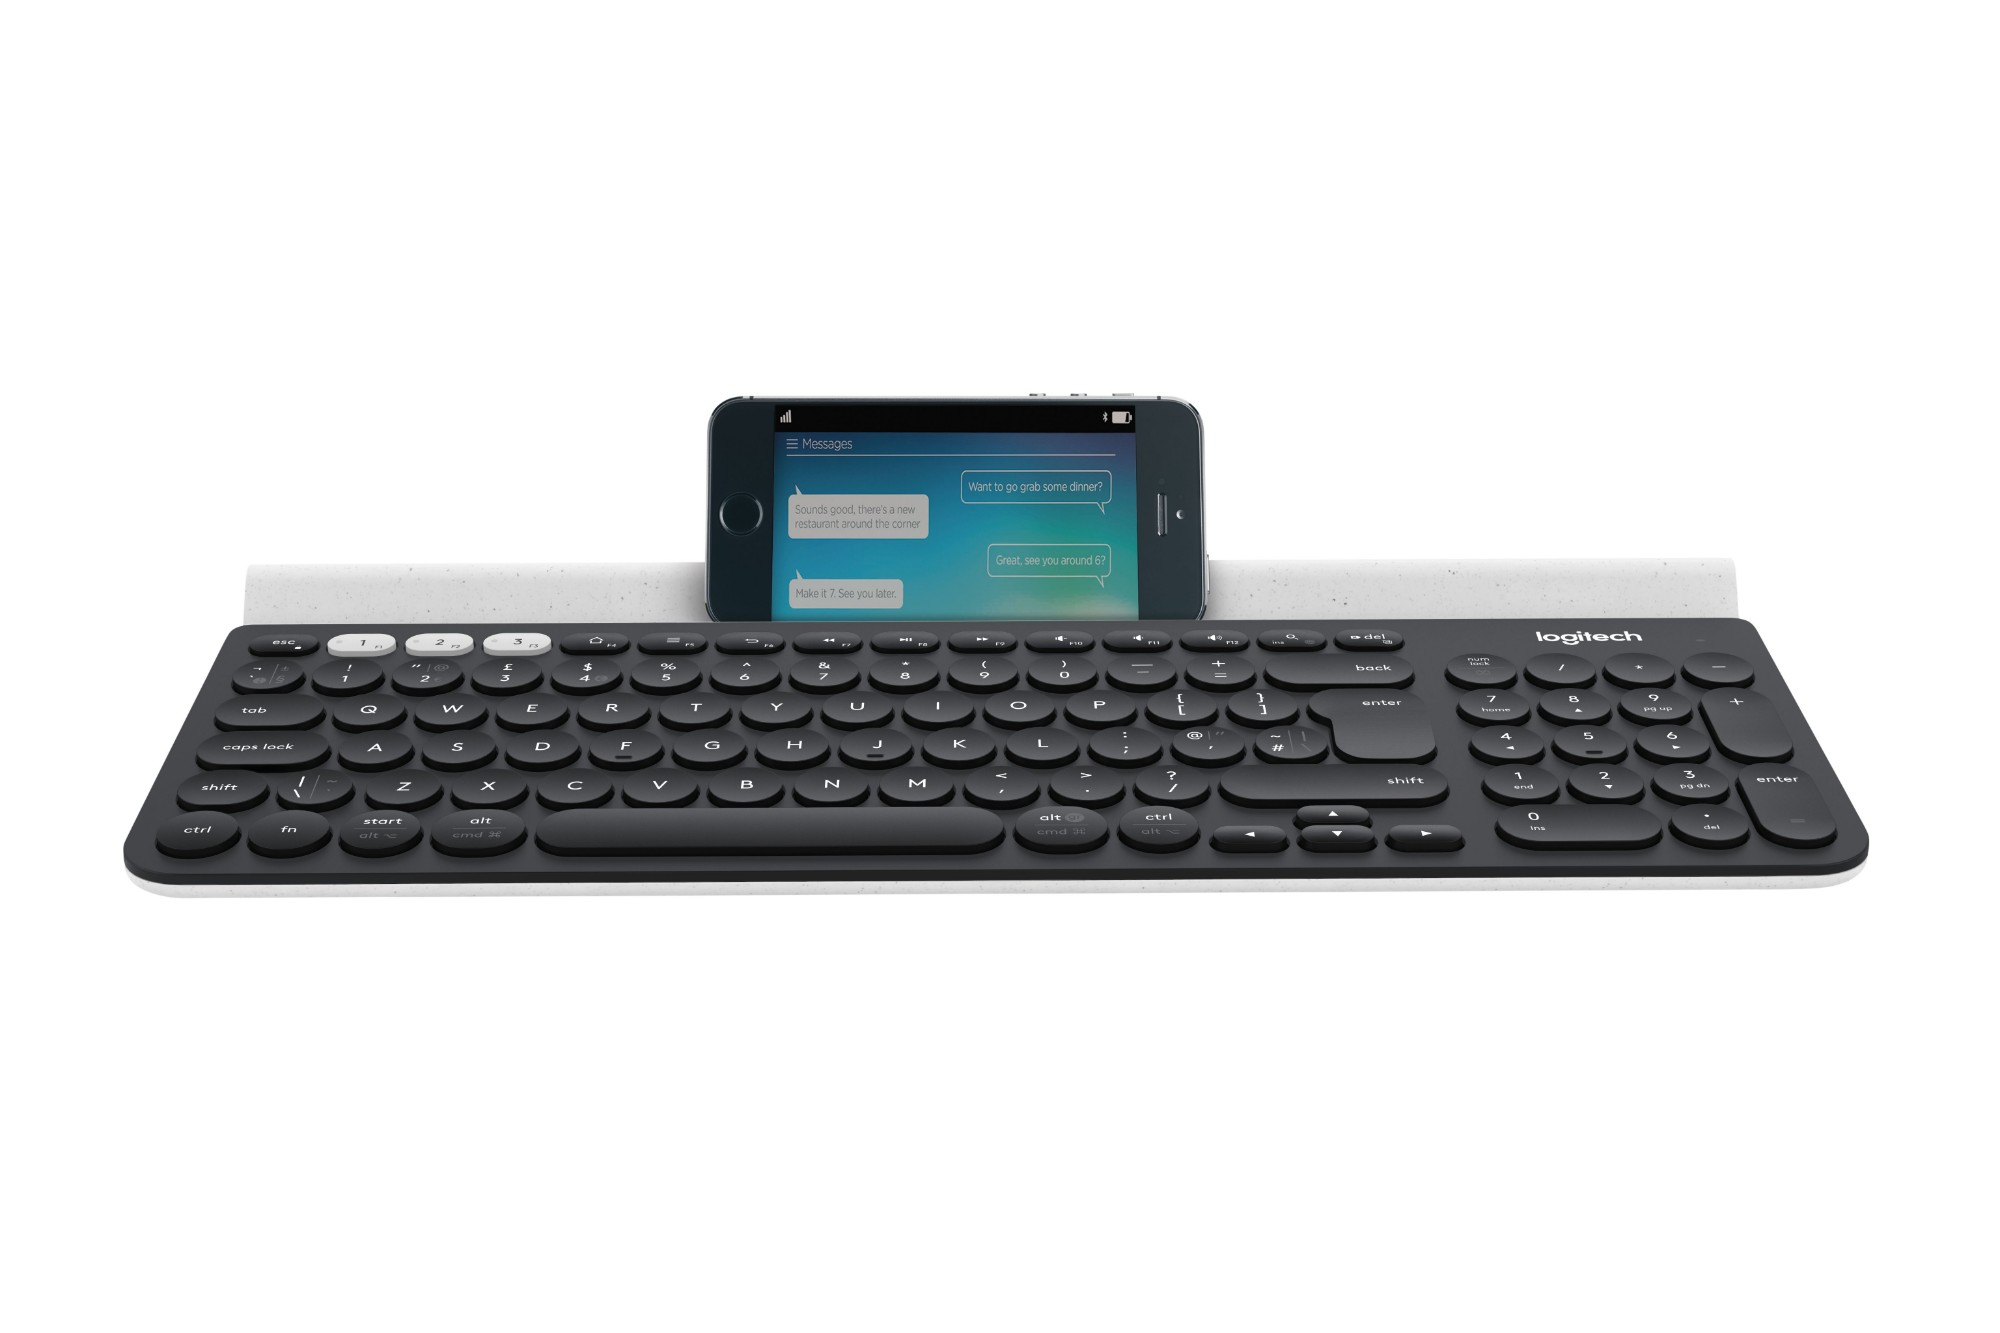 K780 Keyboard, GermanWireless